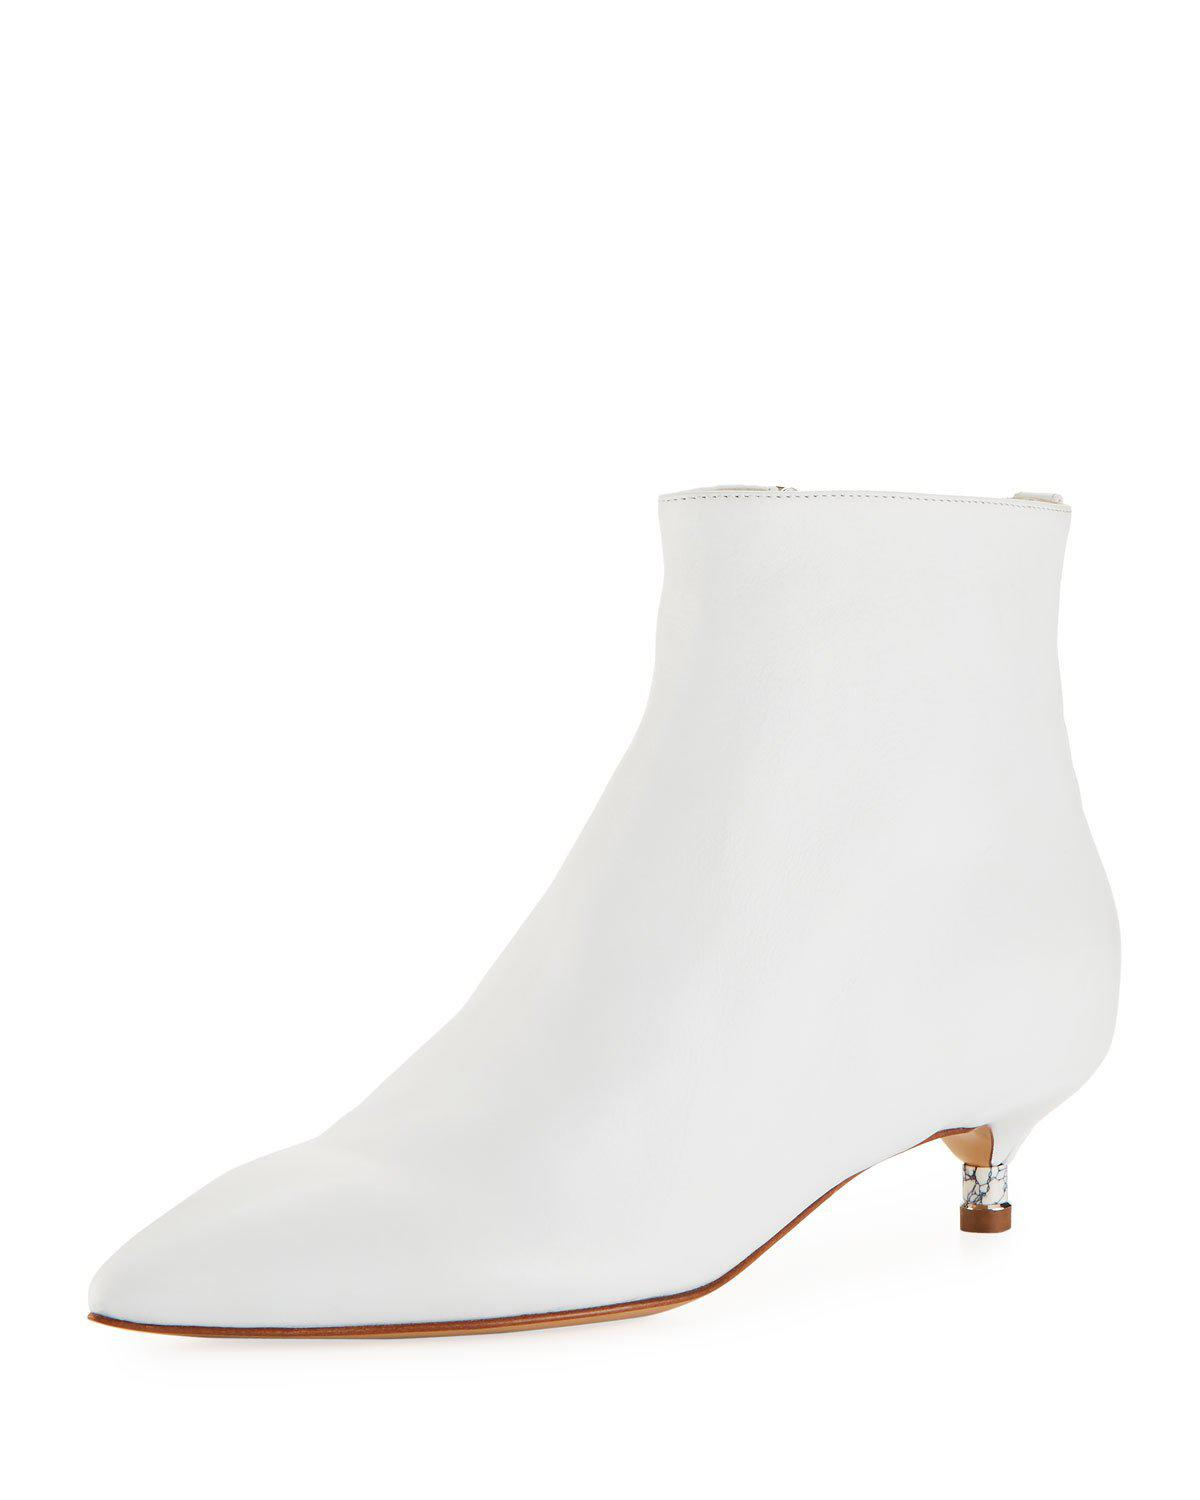 Gabriela Hearst Ricardo Calf Zip Booties In White